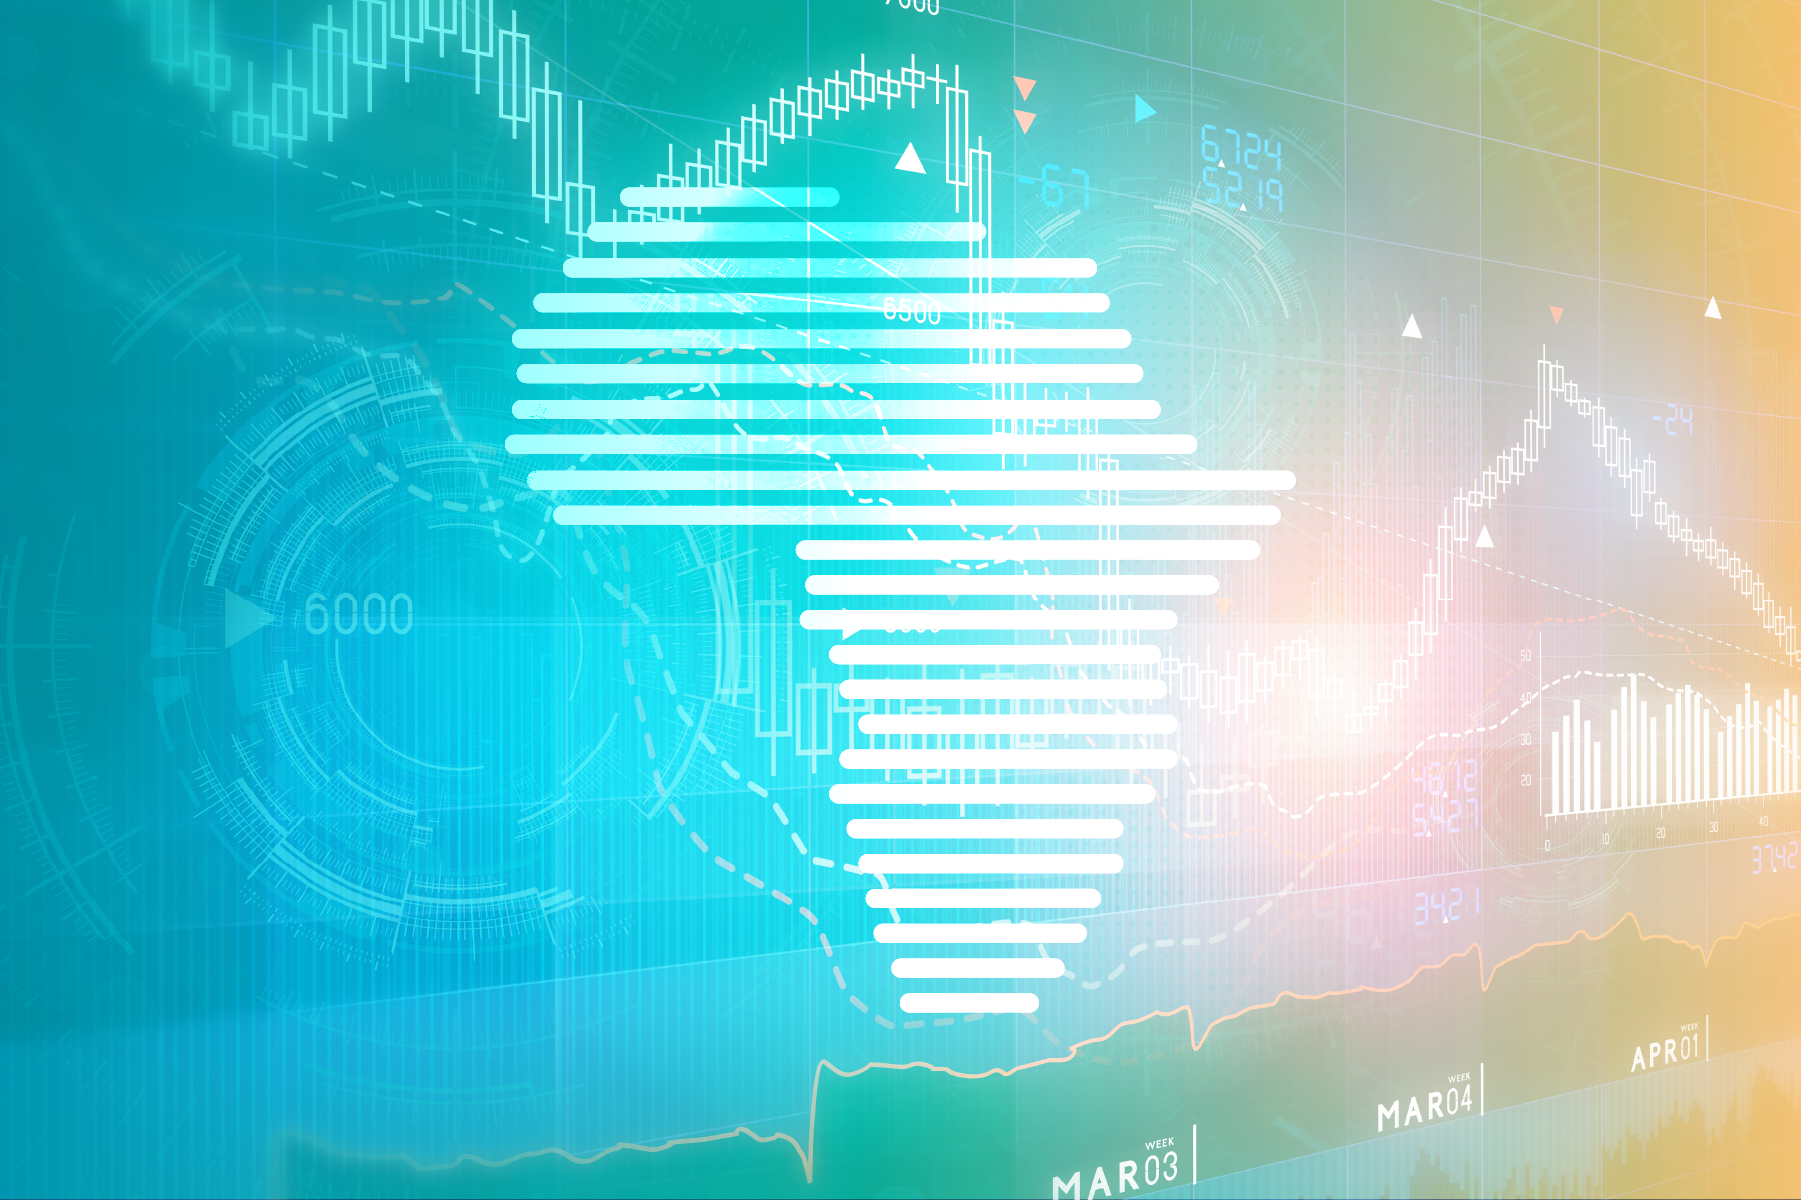 2021 Budget: African Countries To Focus On Digital Transformation And Security